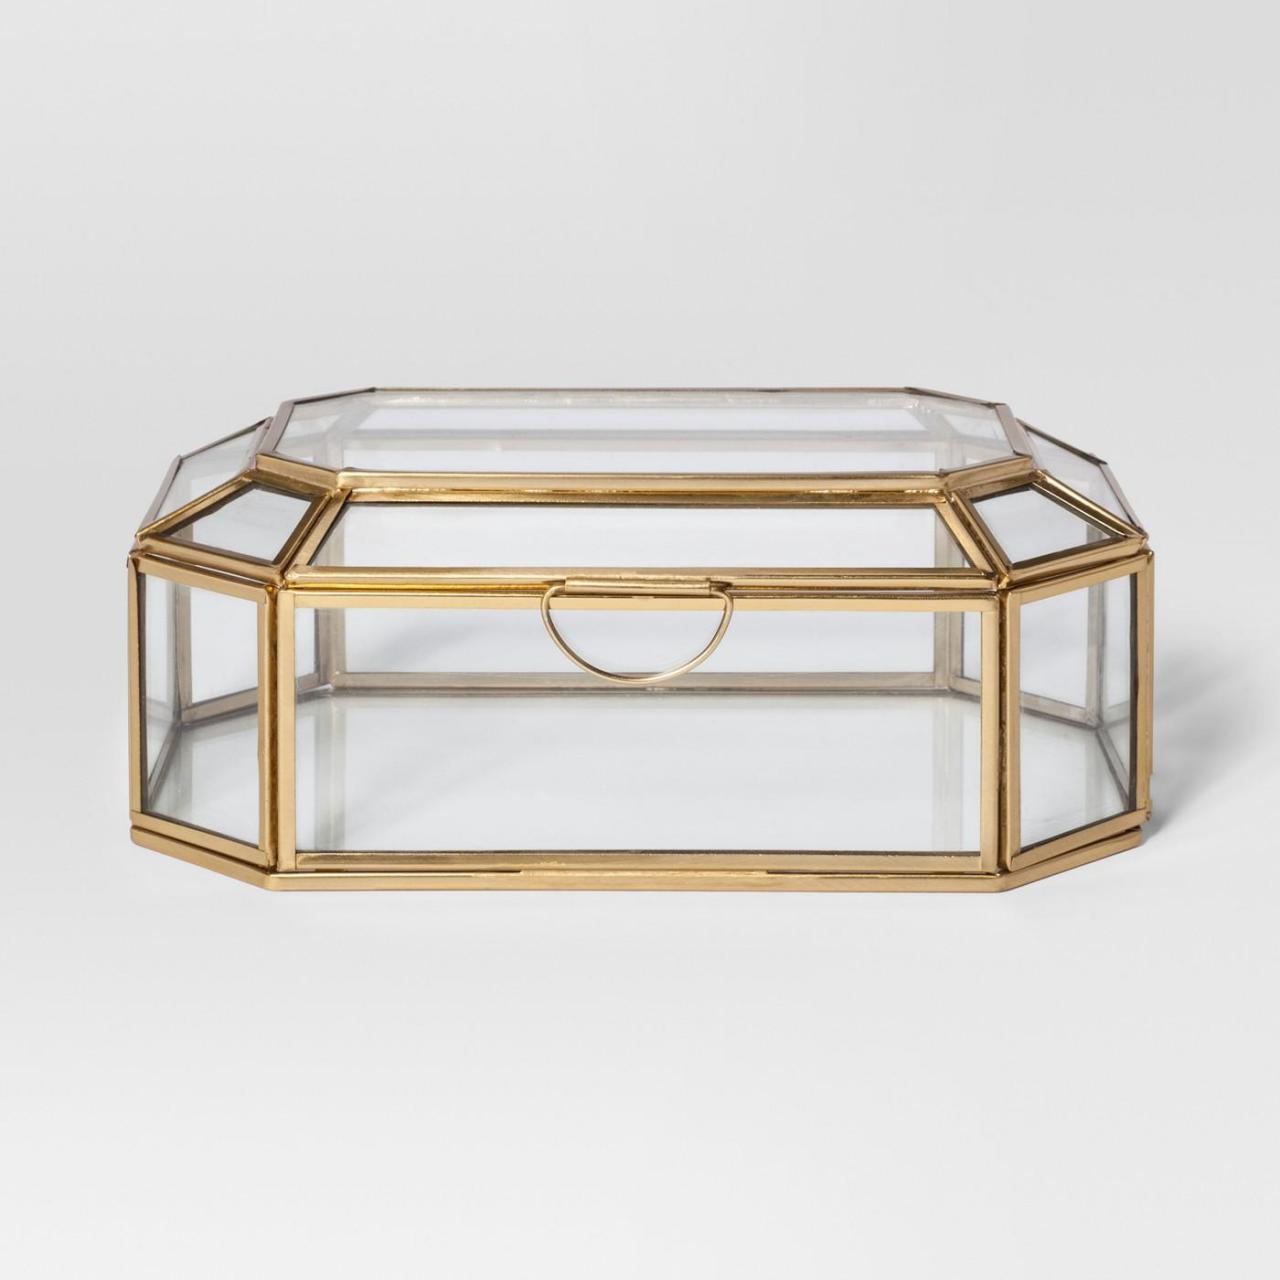 Best Glass and Gold Display Box wholesale